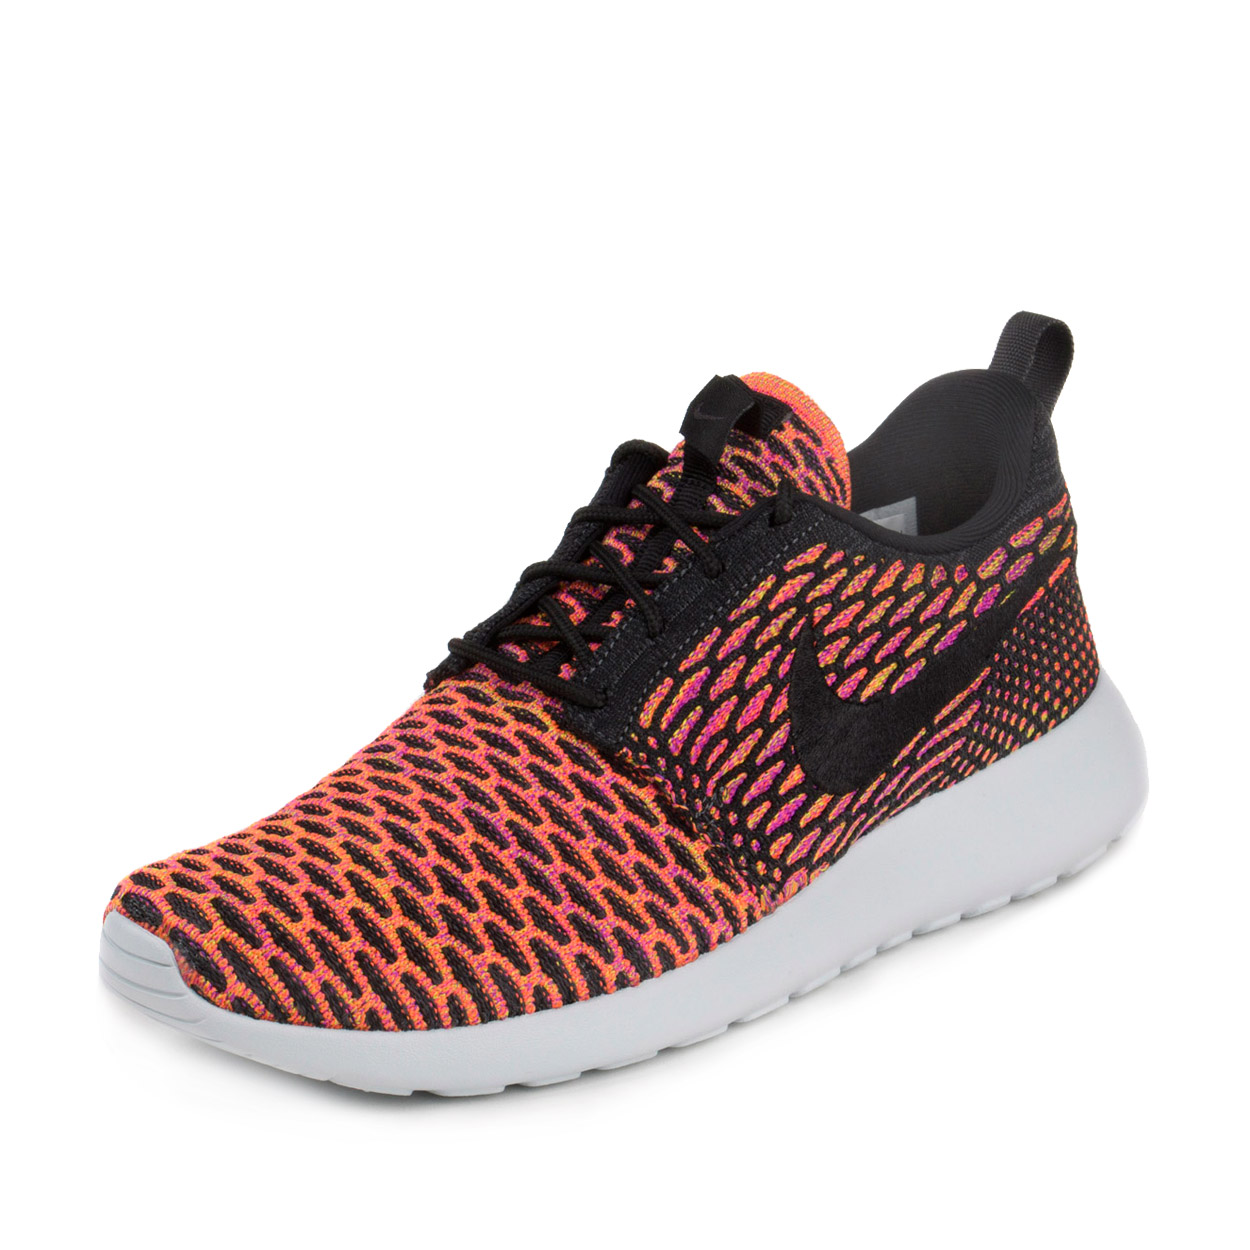 Nike Womens WMNS Roshe One Flyknit Anthracite/Orange-Vivi...